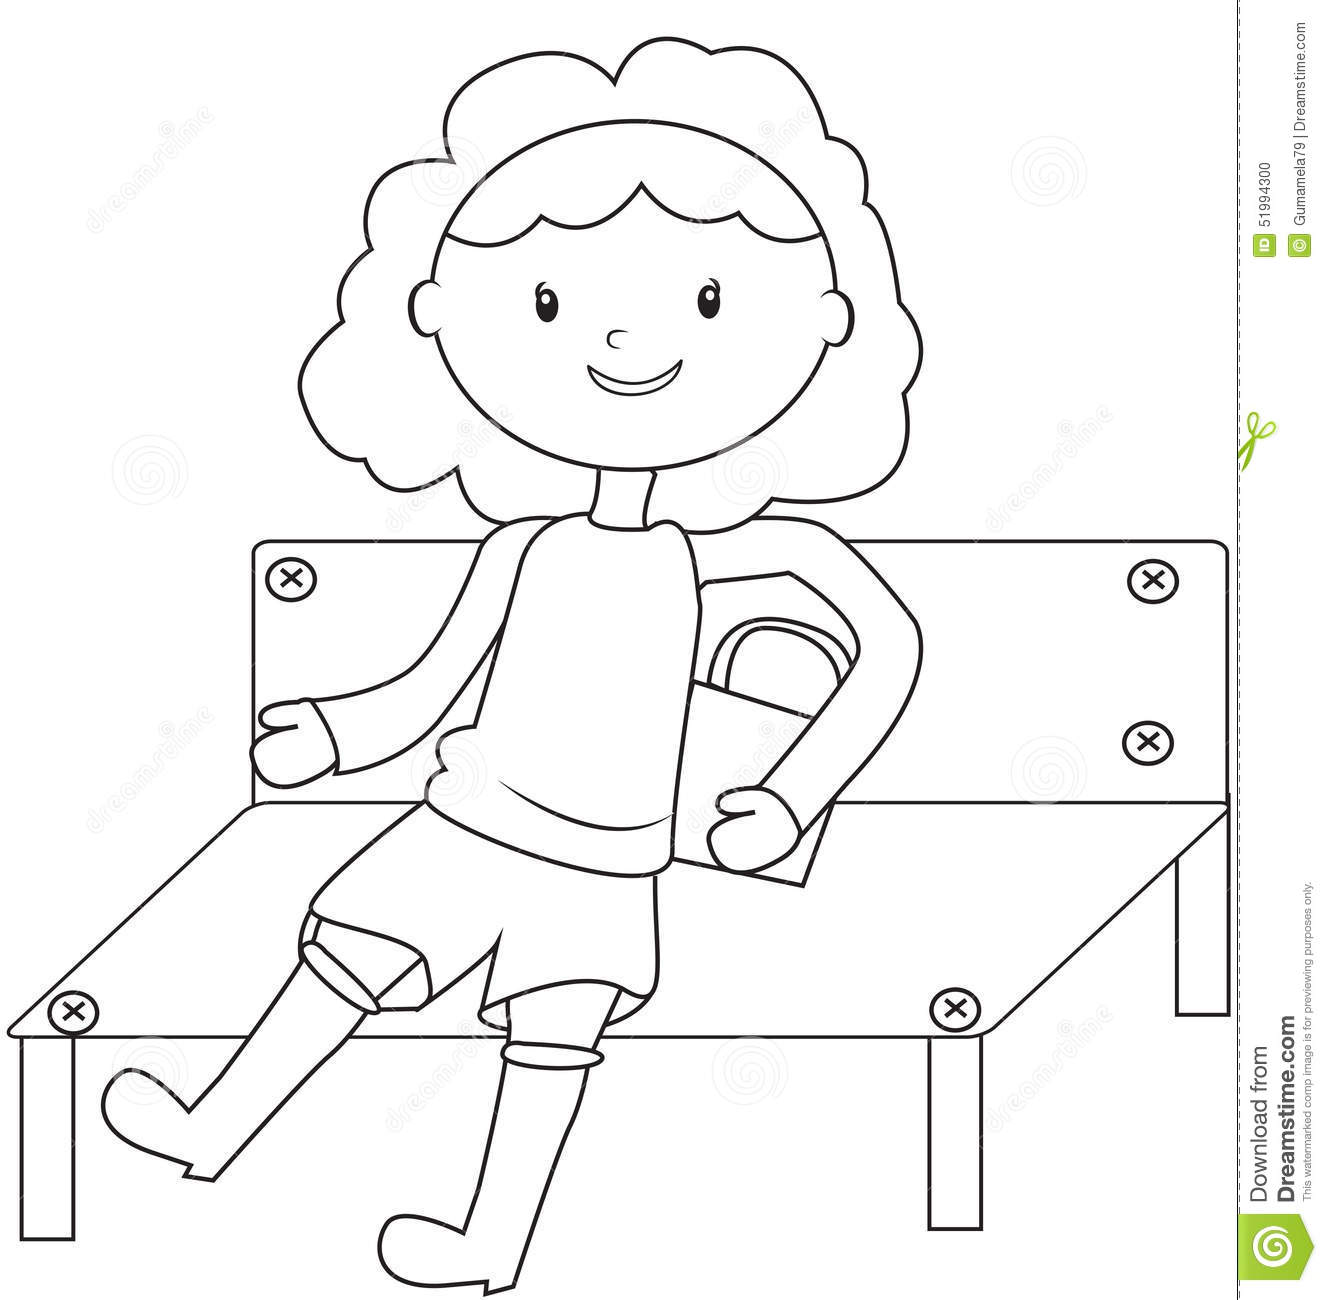 girl sitting on a bench coloring page stock illustration